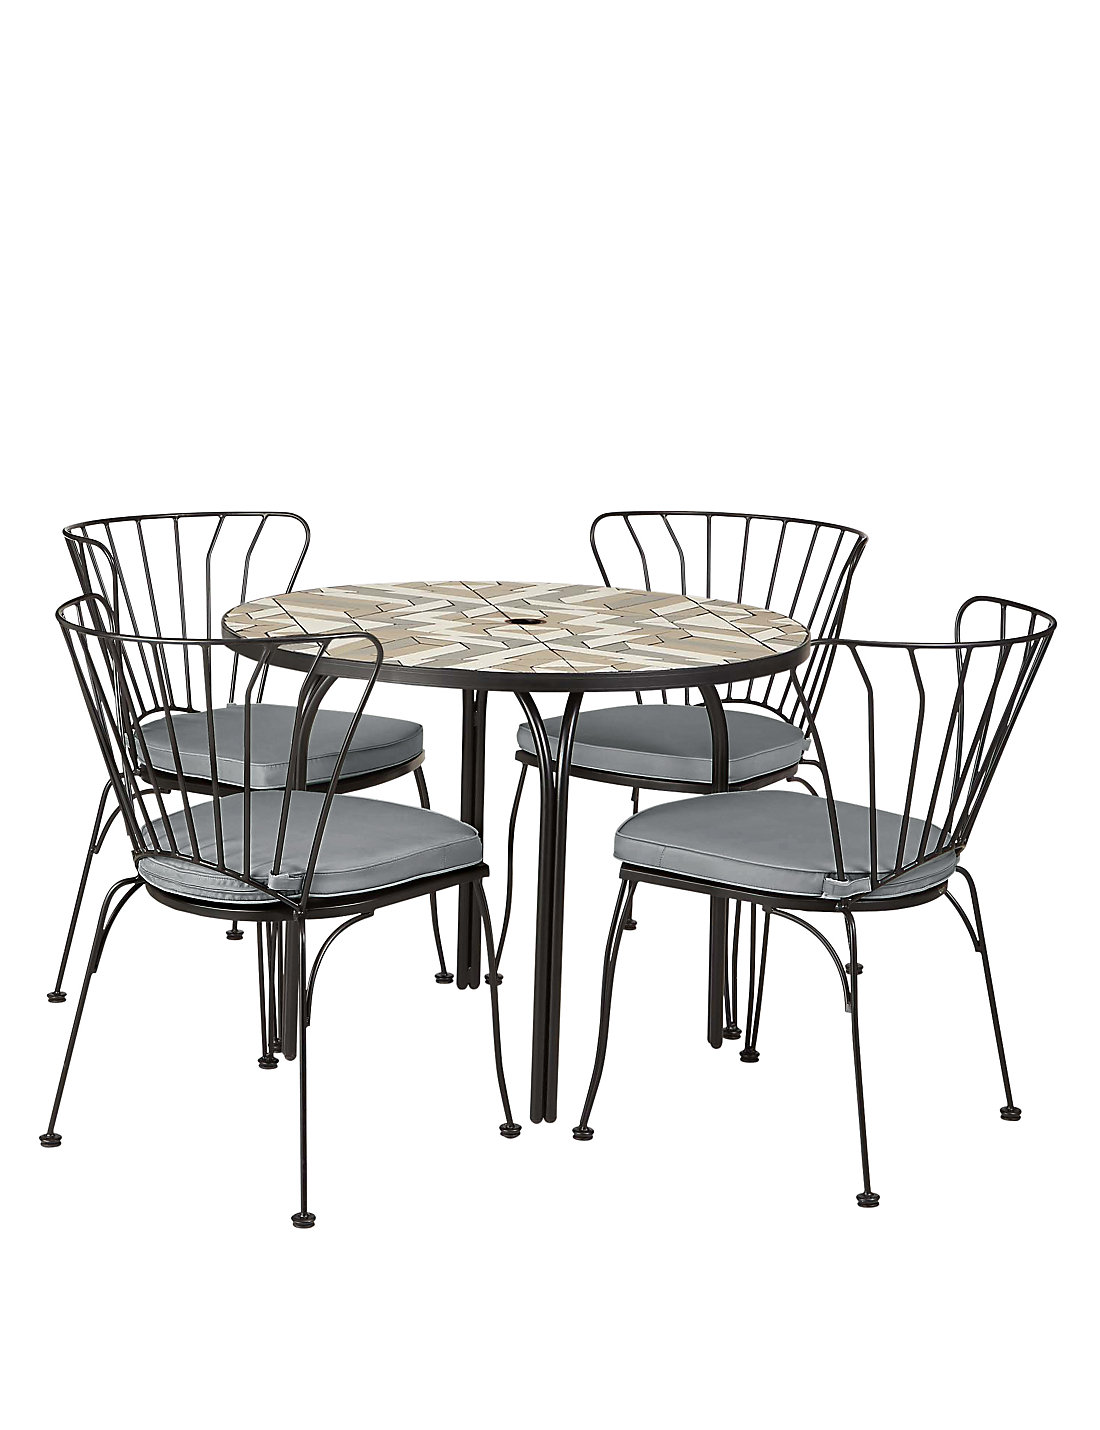 Geo Mosaic Table   4 Chairs. Garden Furniture   Outdoor Dining Sets and Sofas   M S